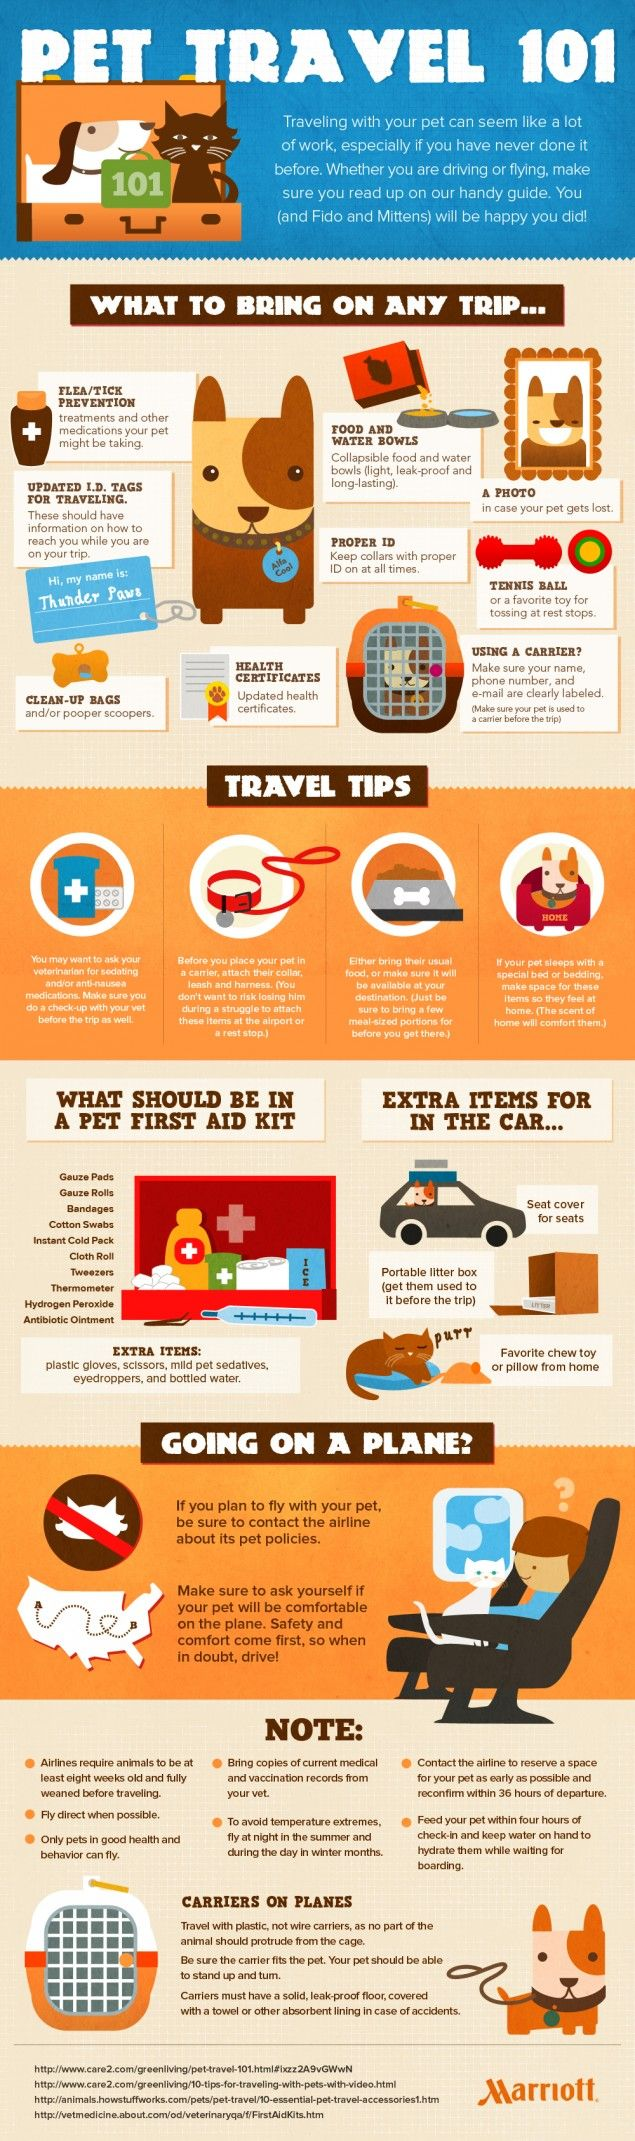 Pet Safety Infographic - pet travel 101: how to keep your pets safe when traveling